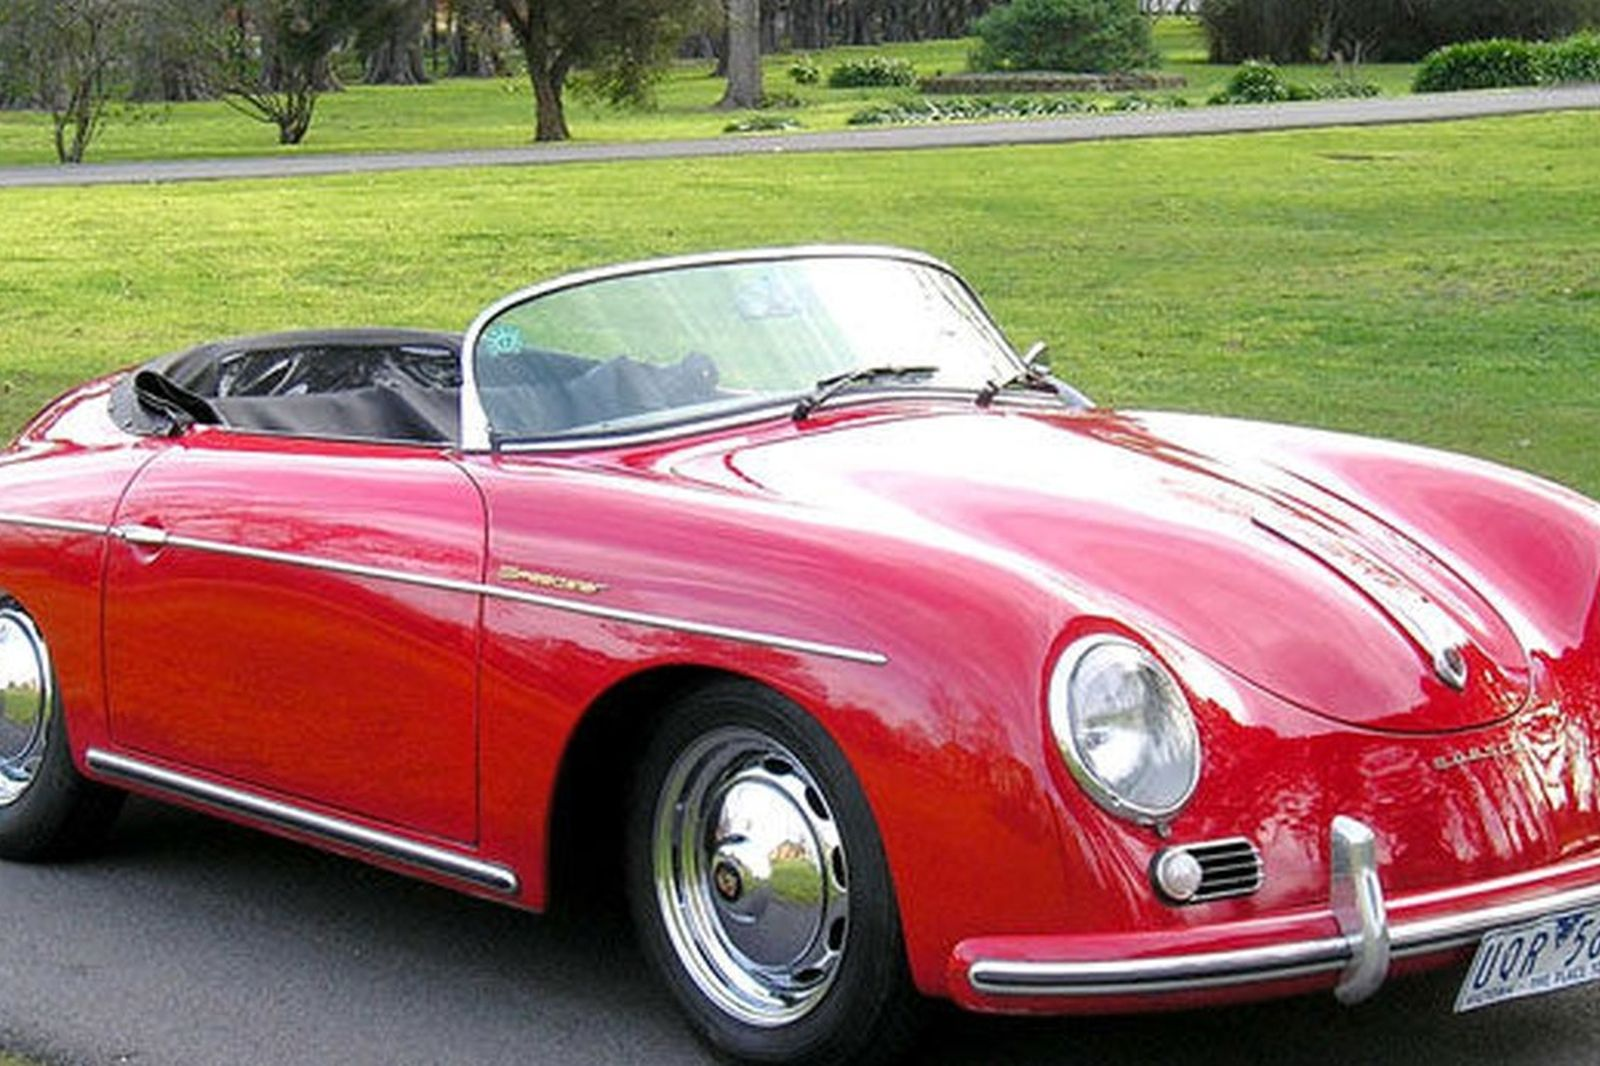 356 speedster 39 replica 39 lhd auctions lot 37 shannons. Black Bedroom Furniture Sets. Home Design Ideas